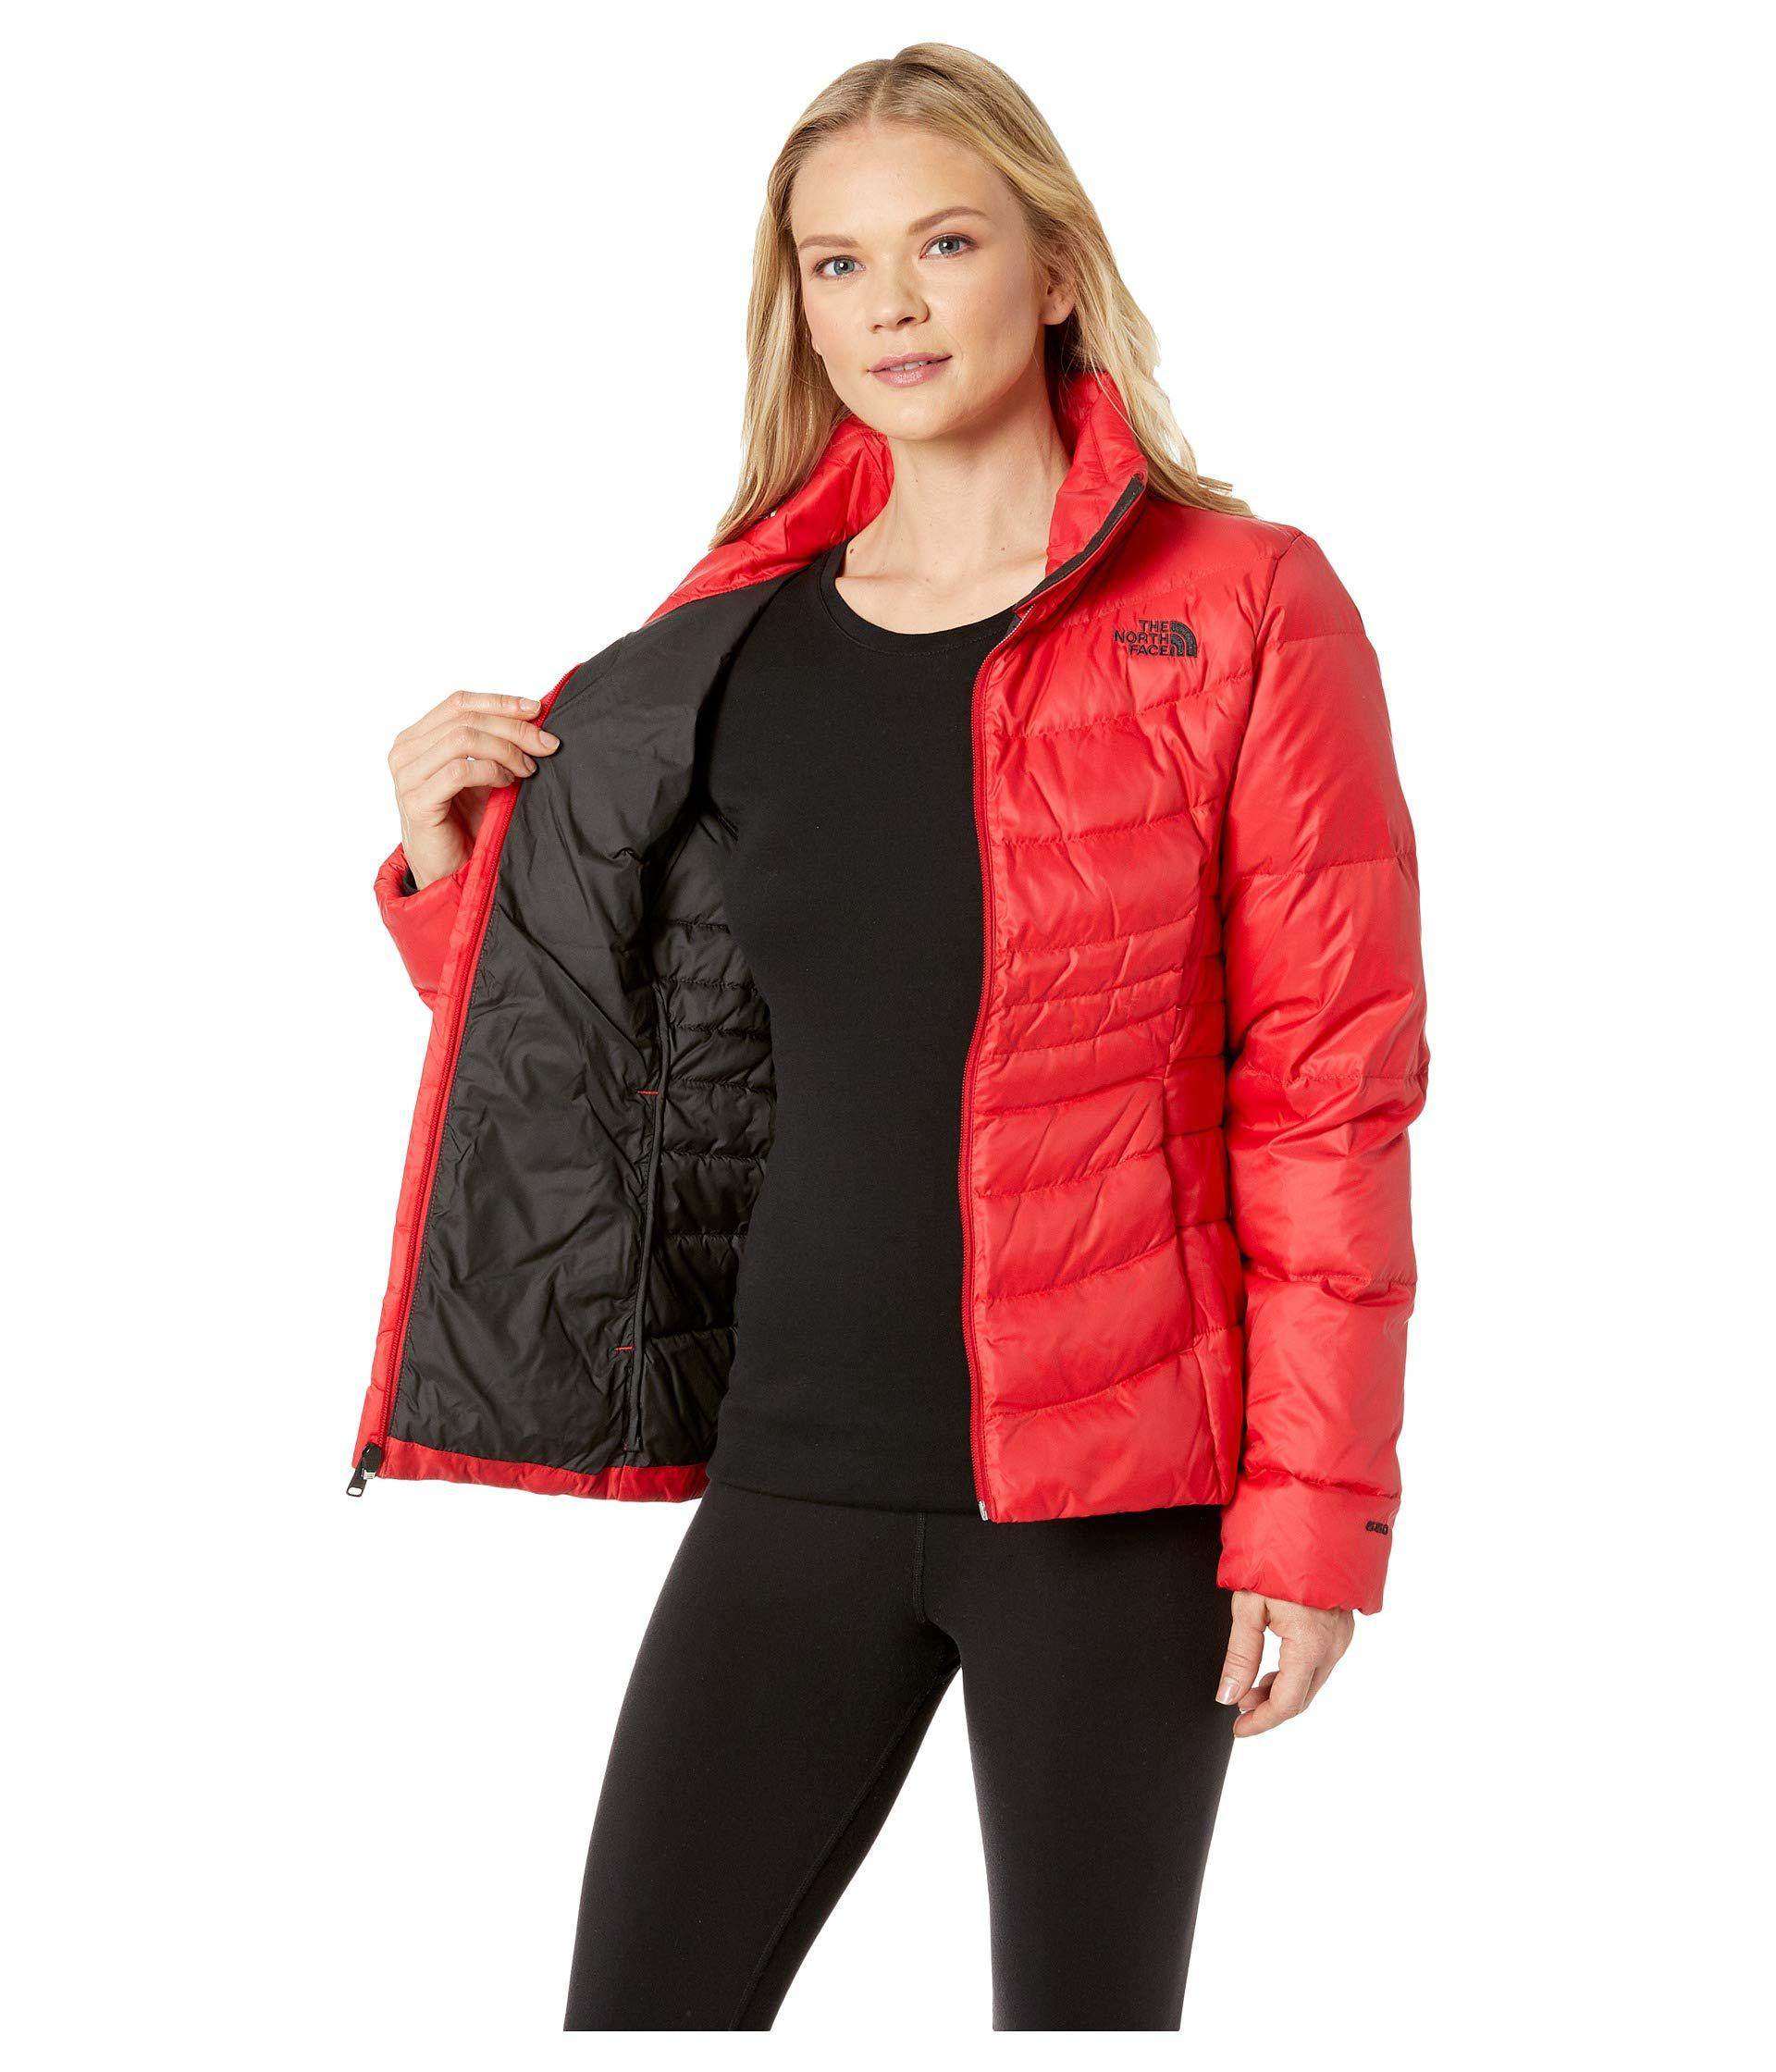 cd97d7e47 The North Face Aconcagua Jacket Ii (tnf Red) Women's Coat in Red - Lyst